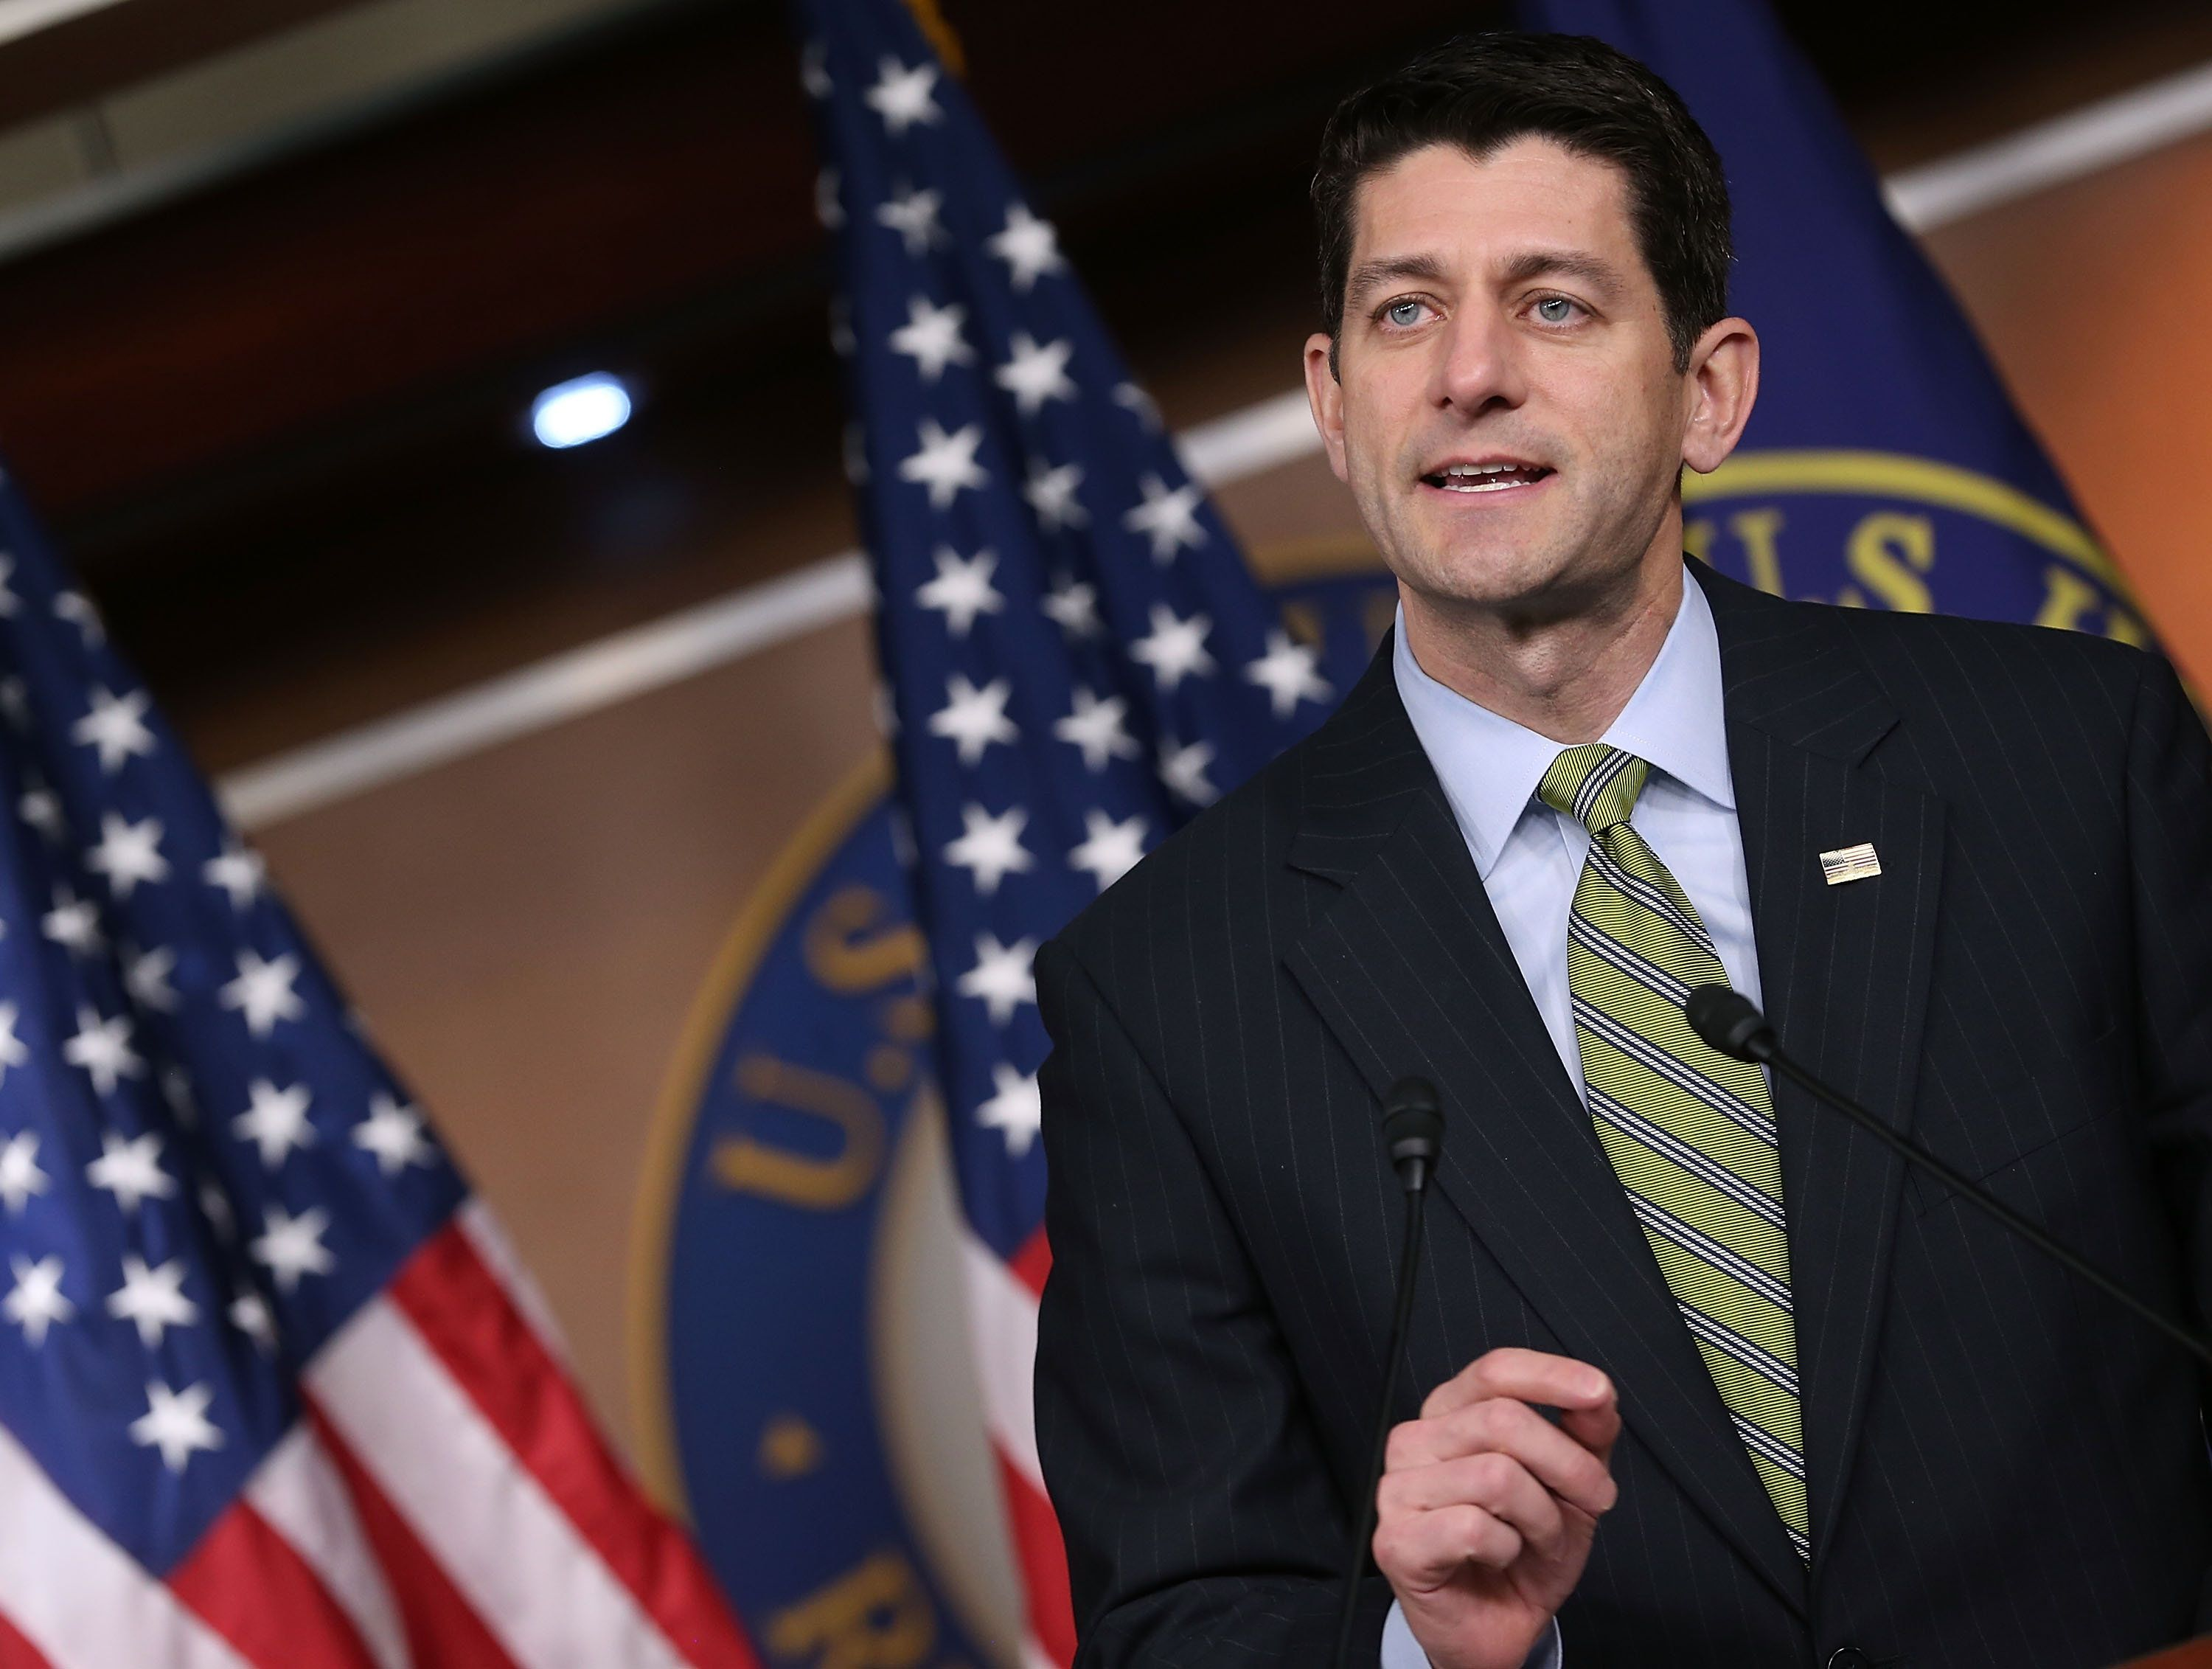 Janesville, Wisconsin, the hometown of House Speaker Paul Ryan (R-Wis.), approved a measure that bars discrimination on the b